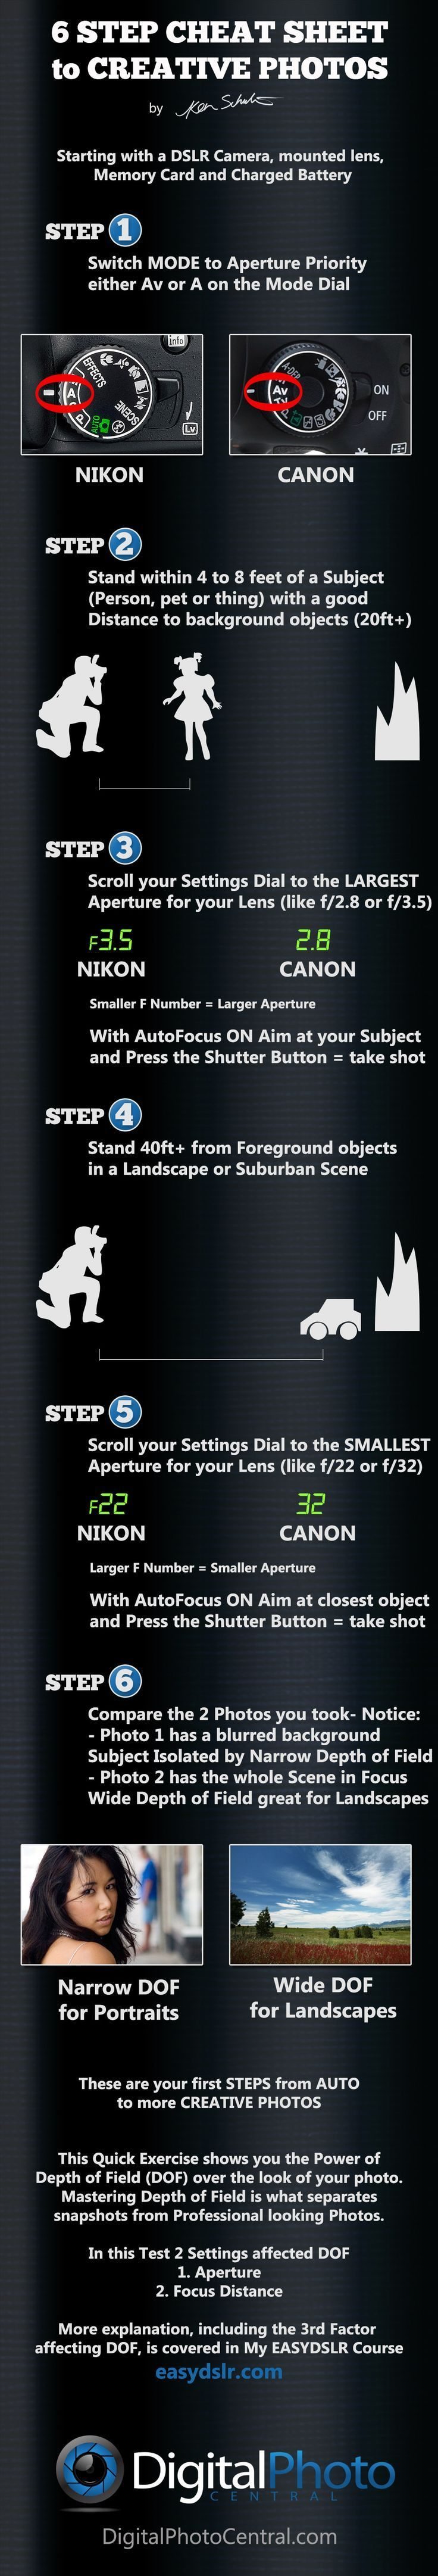 Photography Tips | How to take better photos | Download your free cheat sheet to...